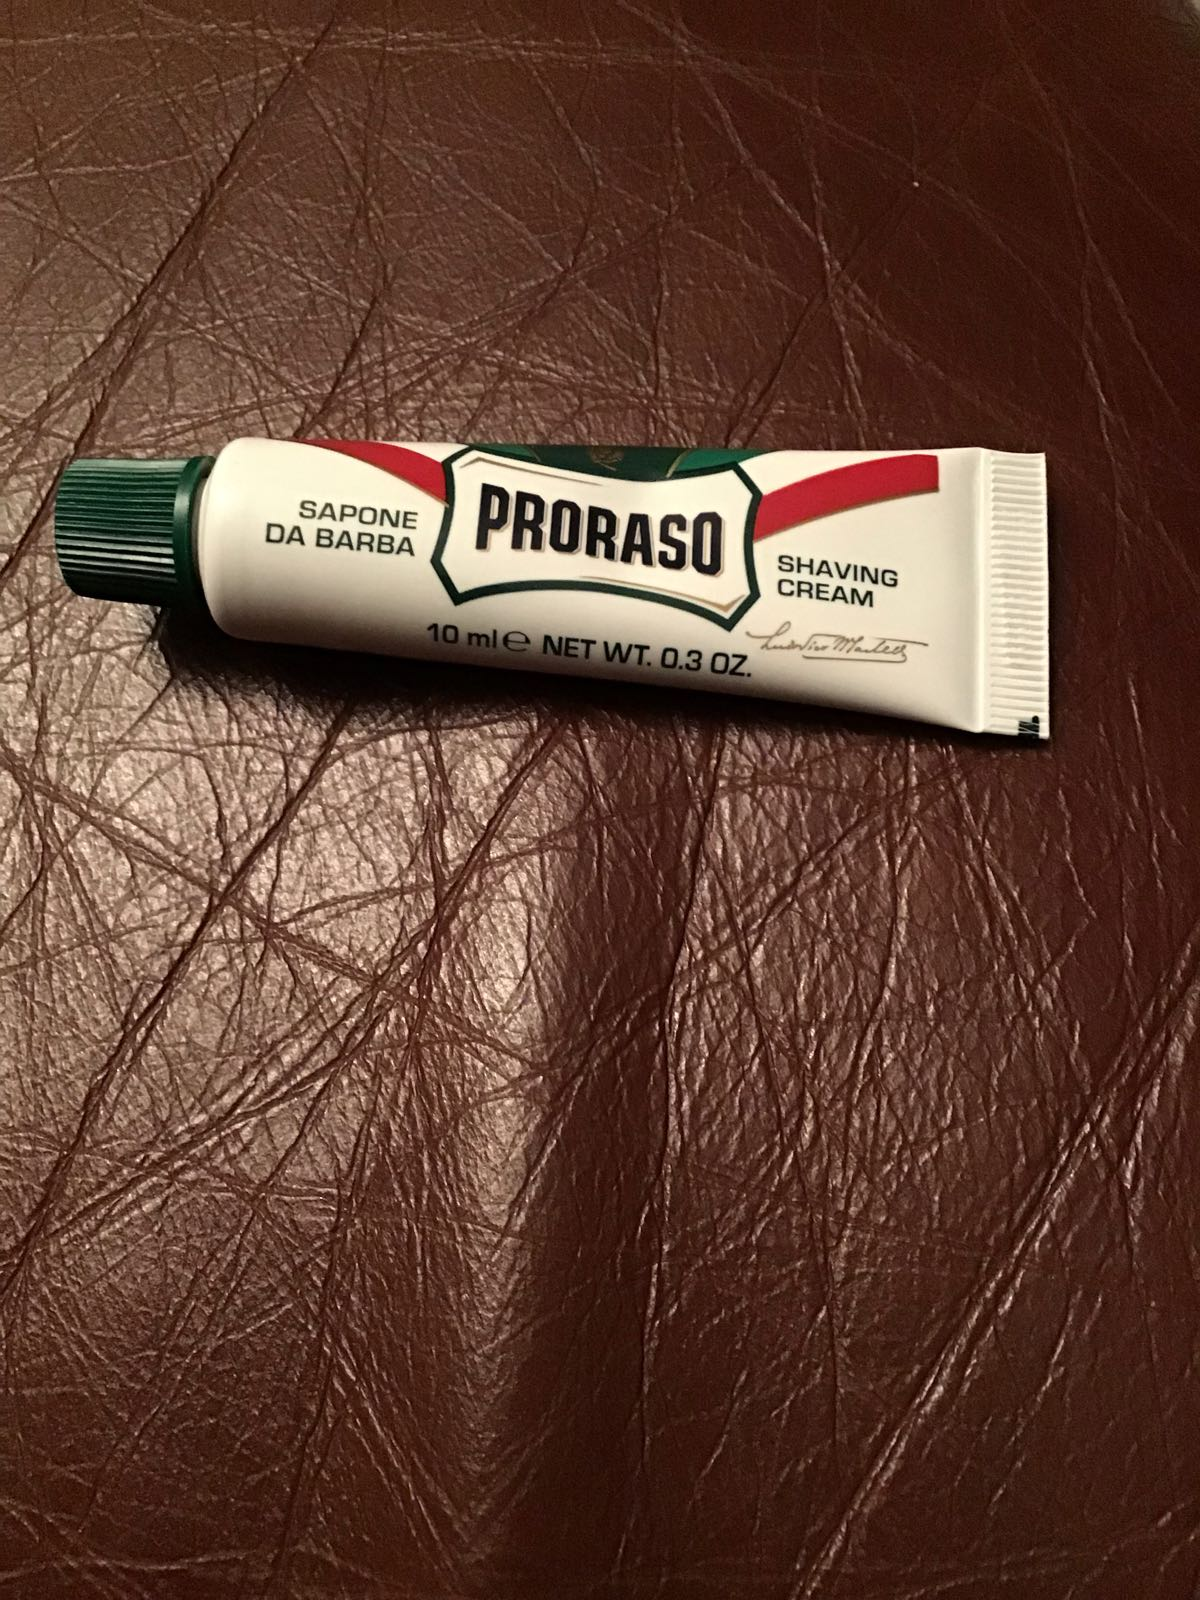 Mini proraso 10ml shaving cream